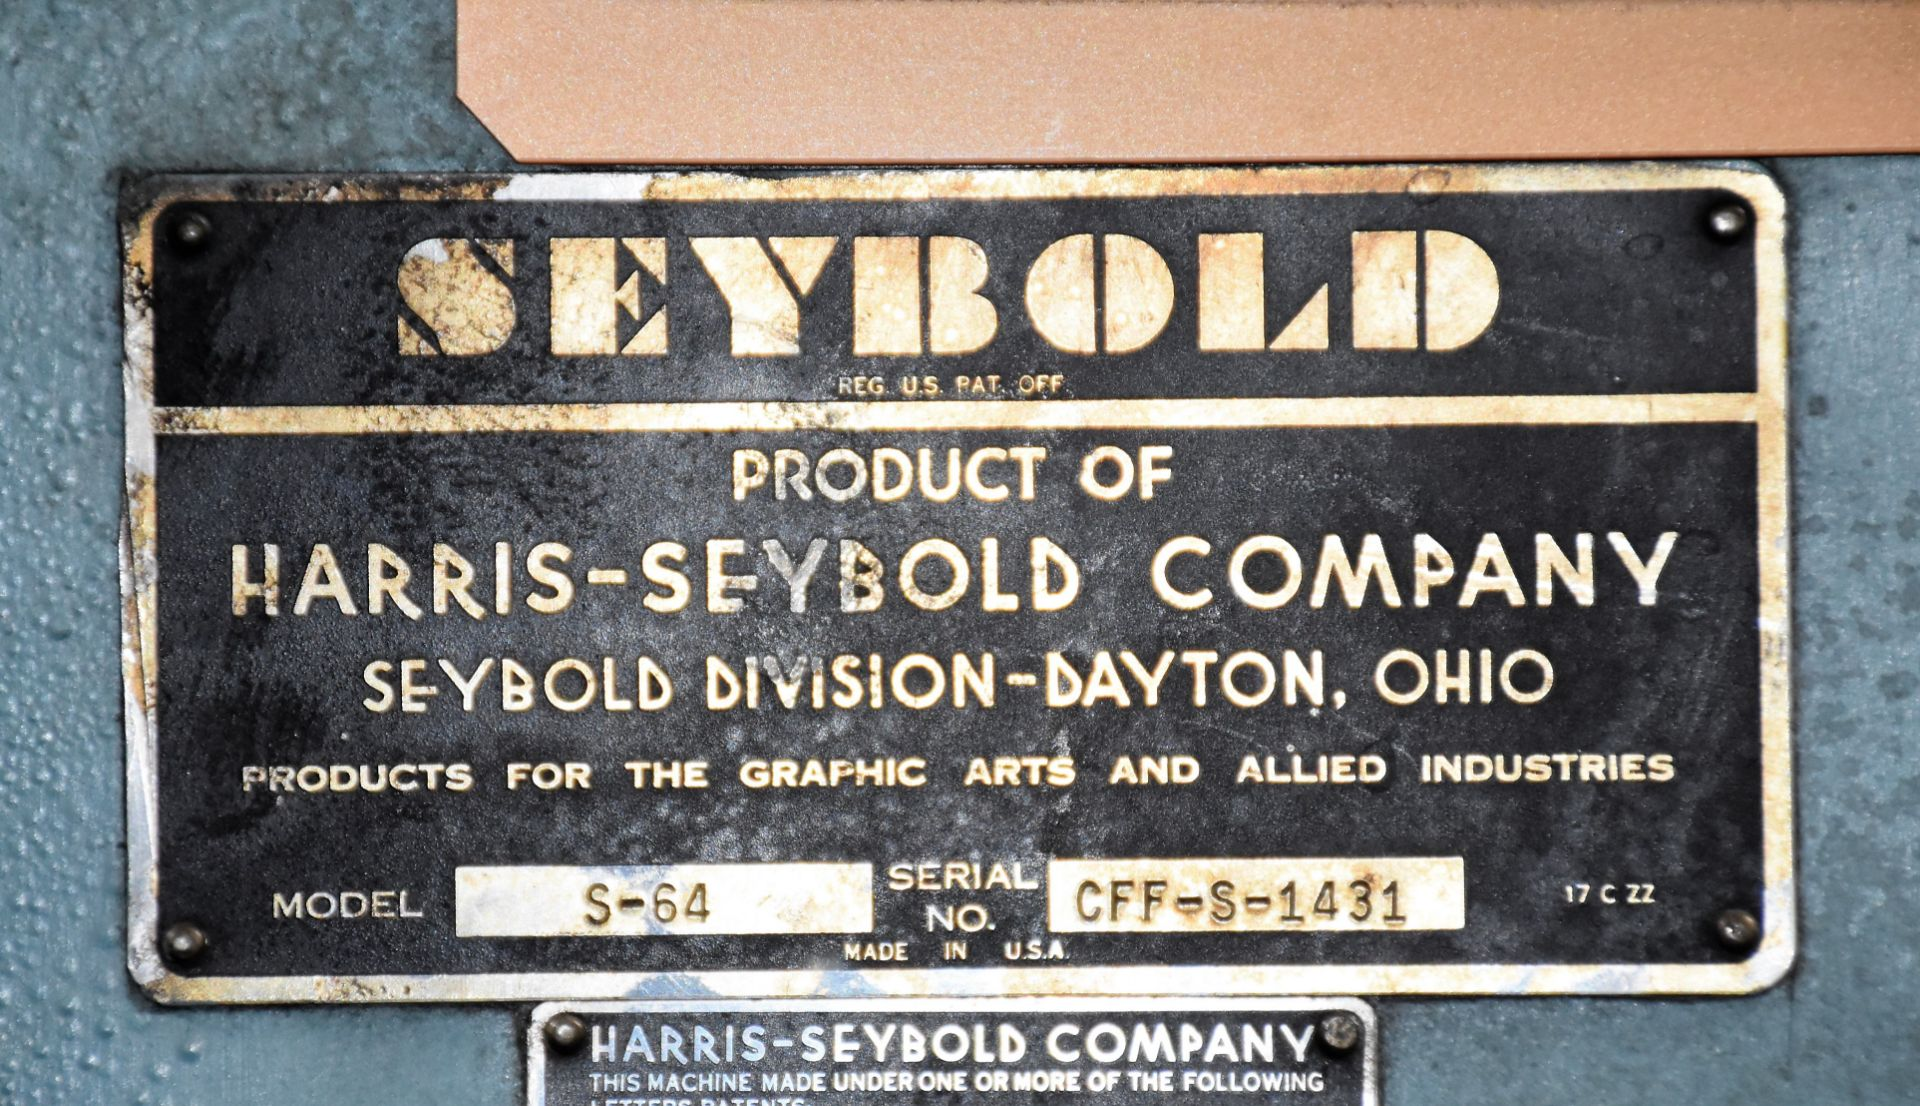 Seybold Paper Cutter, S-64 - Image 8 of 8